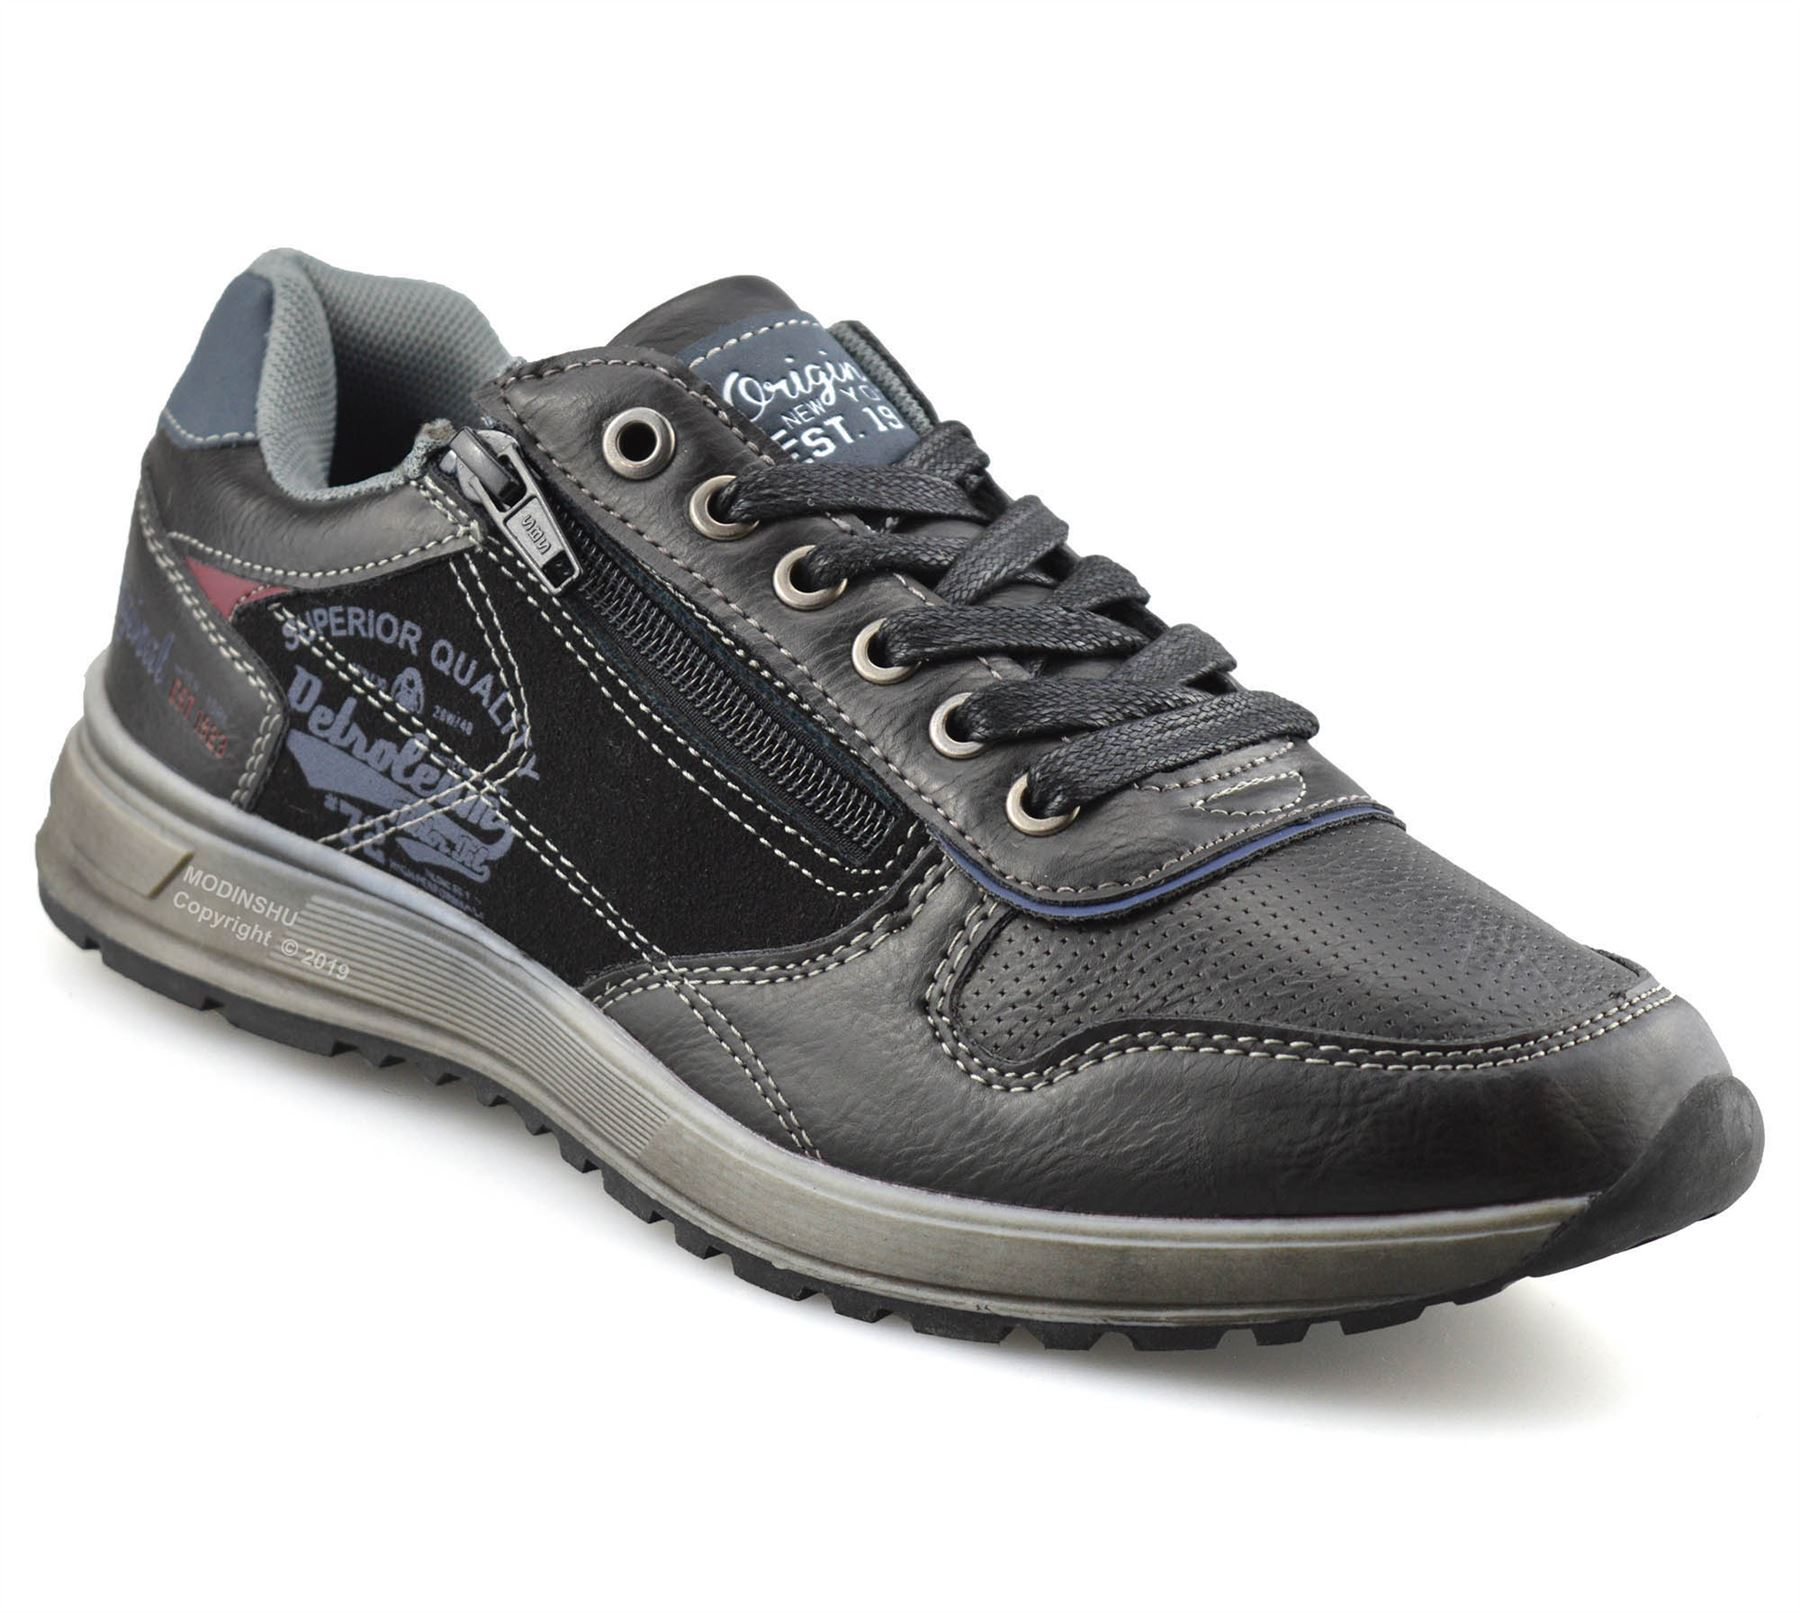 Mens-Casual-Zip-Lace-Up-Walking-Running-Hiking-Sports-Gym-Trainers-Shoes-Size thumbnail 8